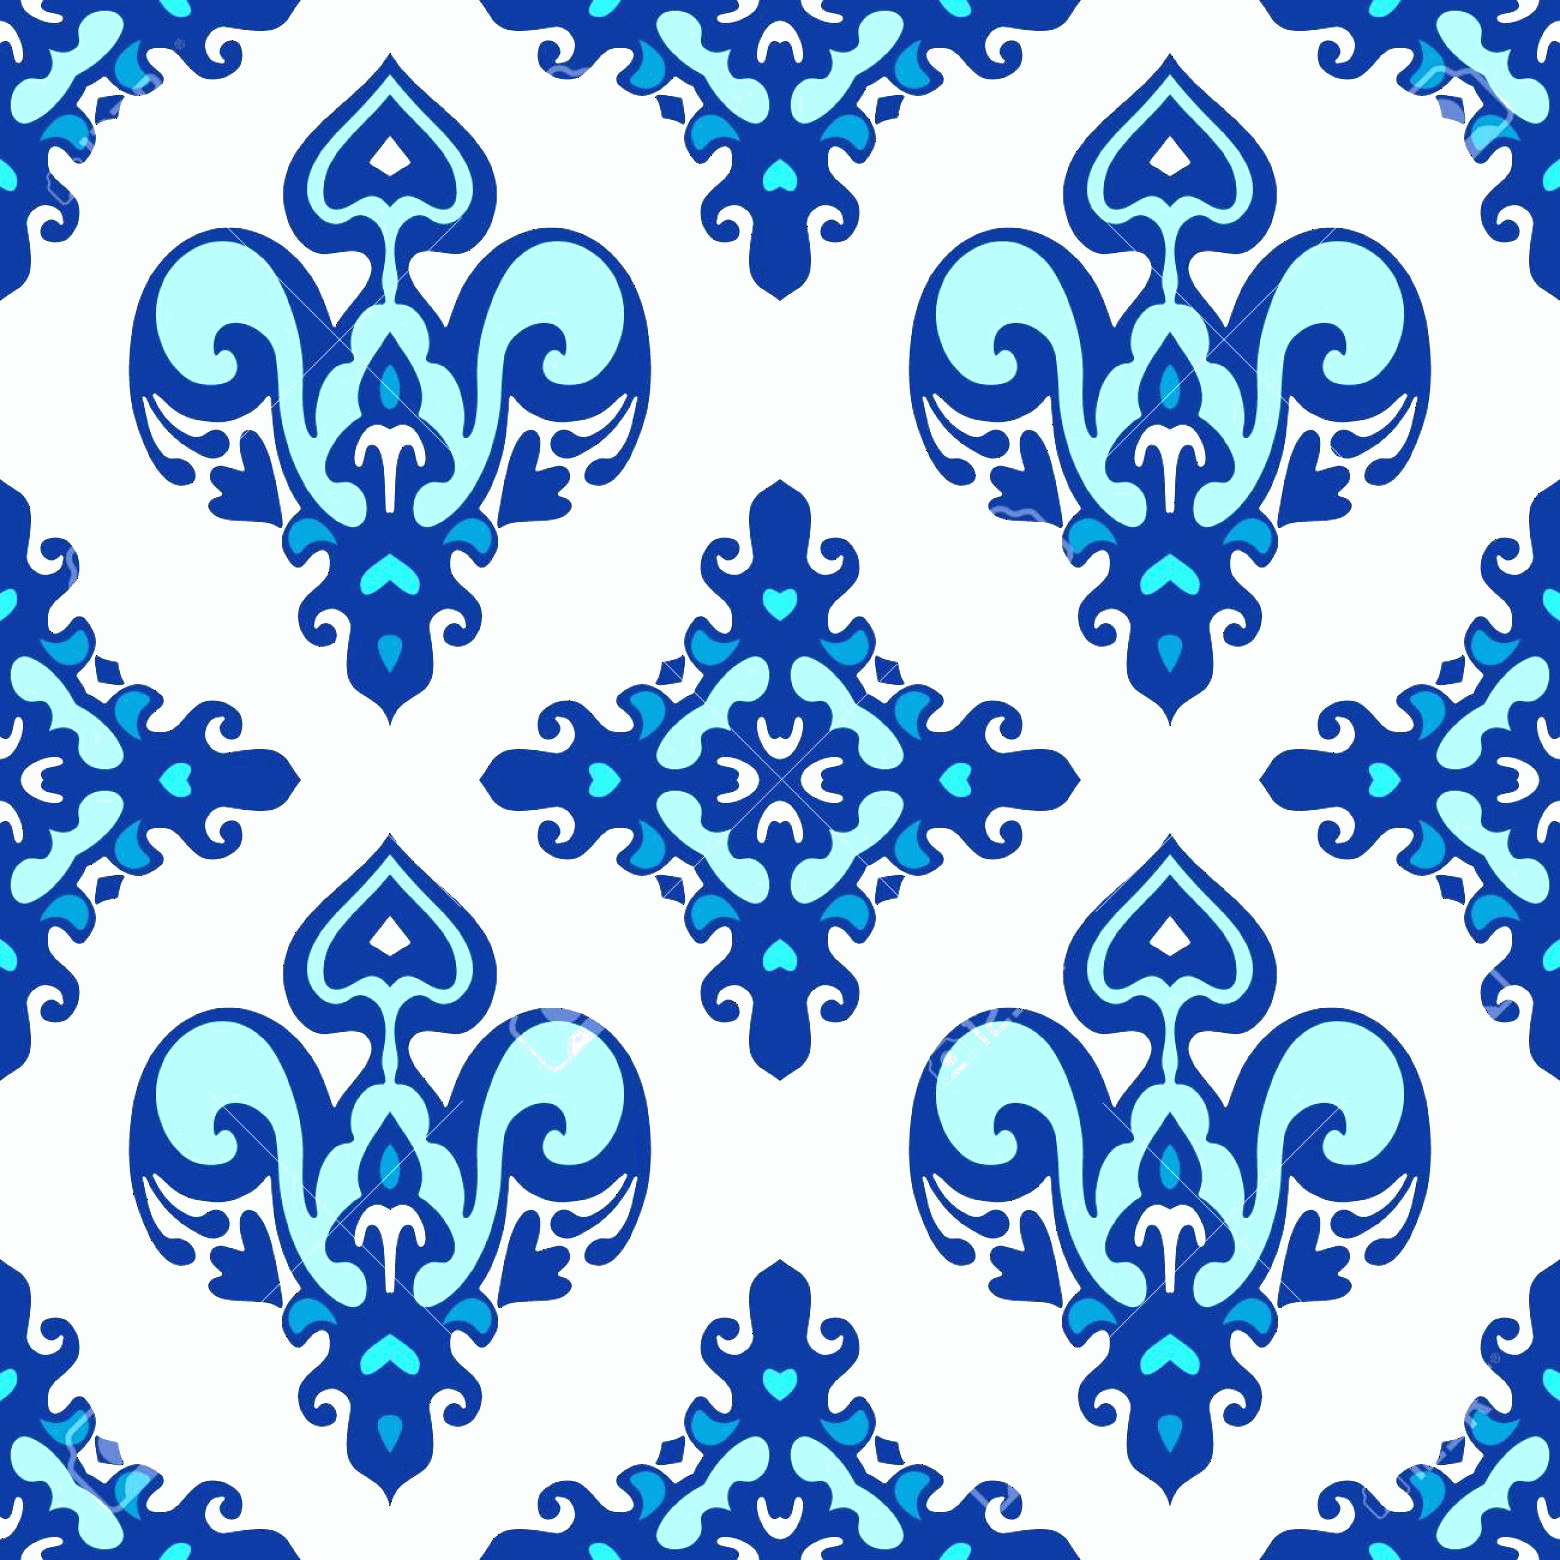 Blue And White Damask Vectors: Photoblue And White Damask Luxury Seamles Pattern Abstract Seamless Ornamental Vector Pattern For Fabric